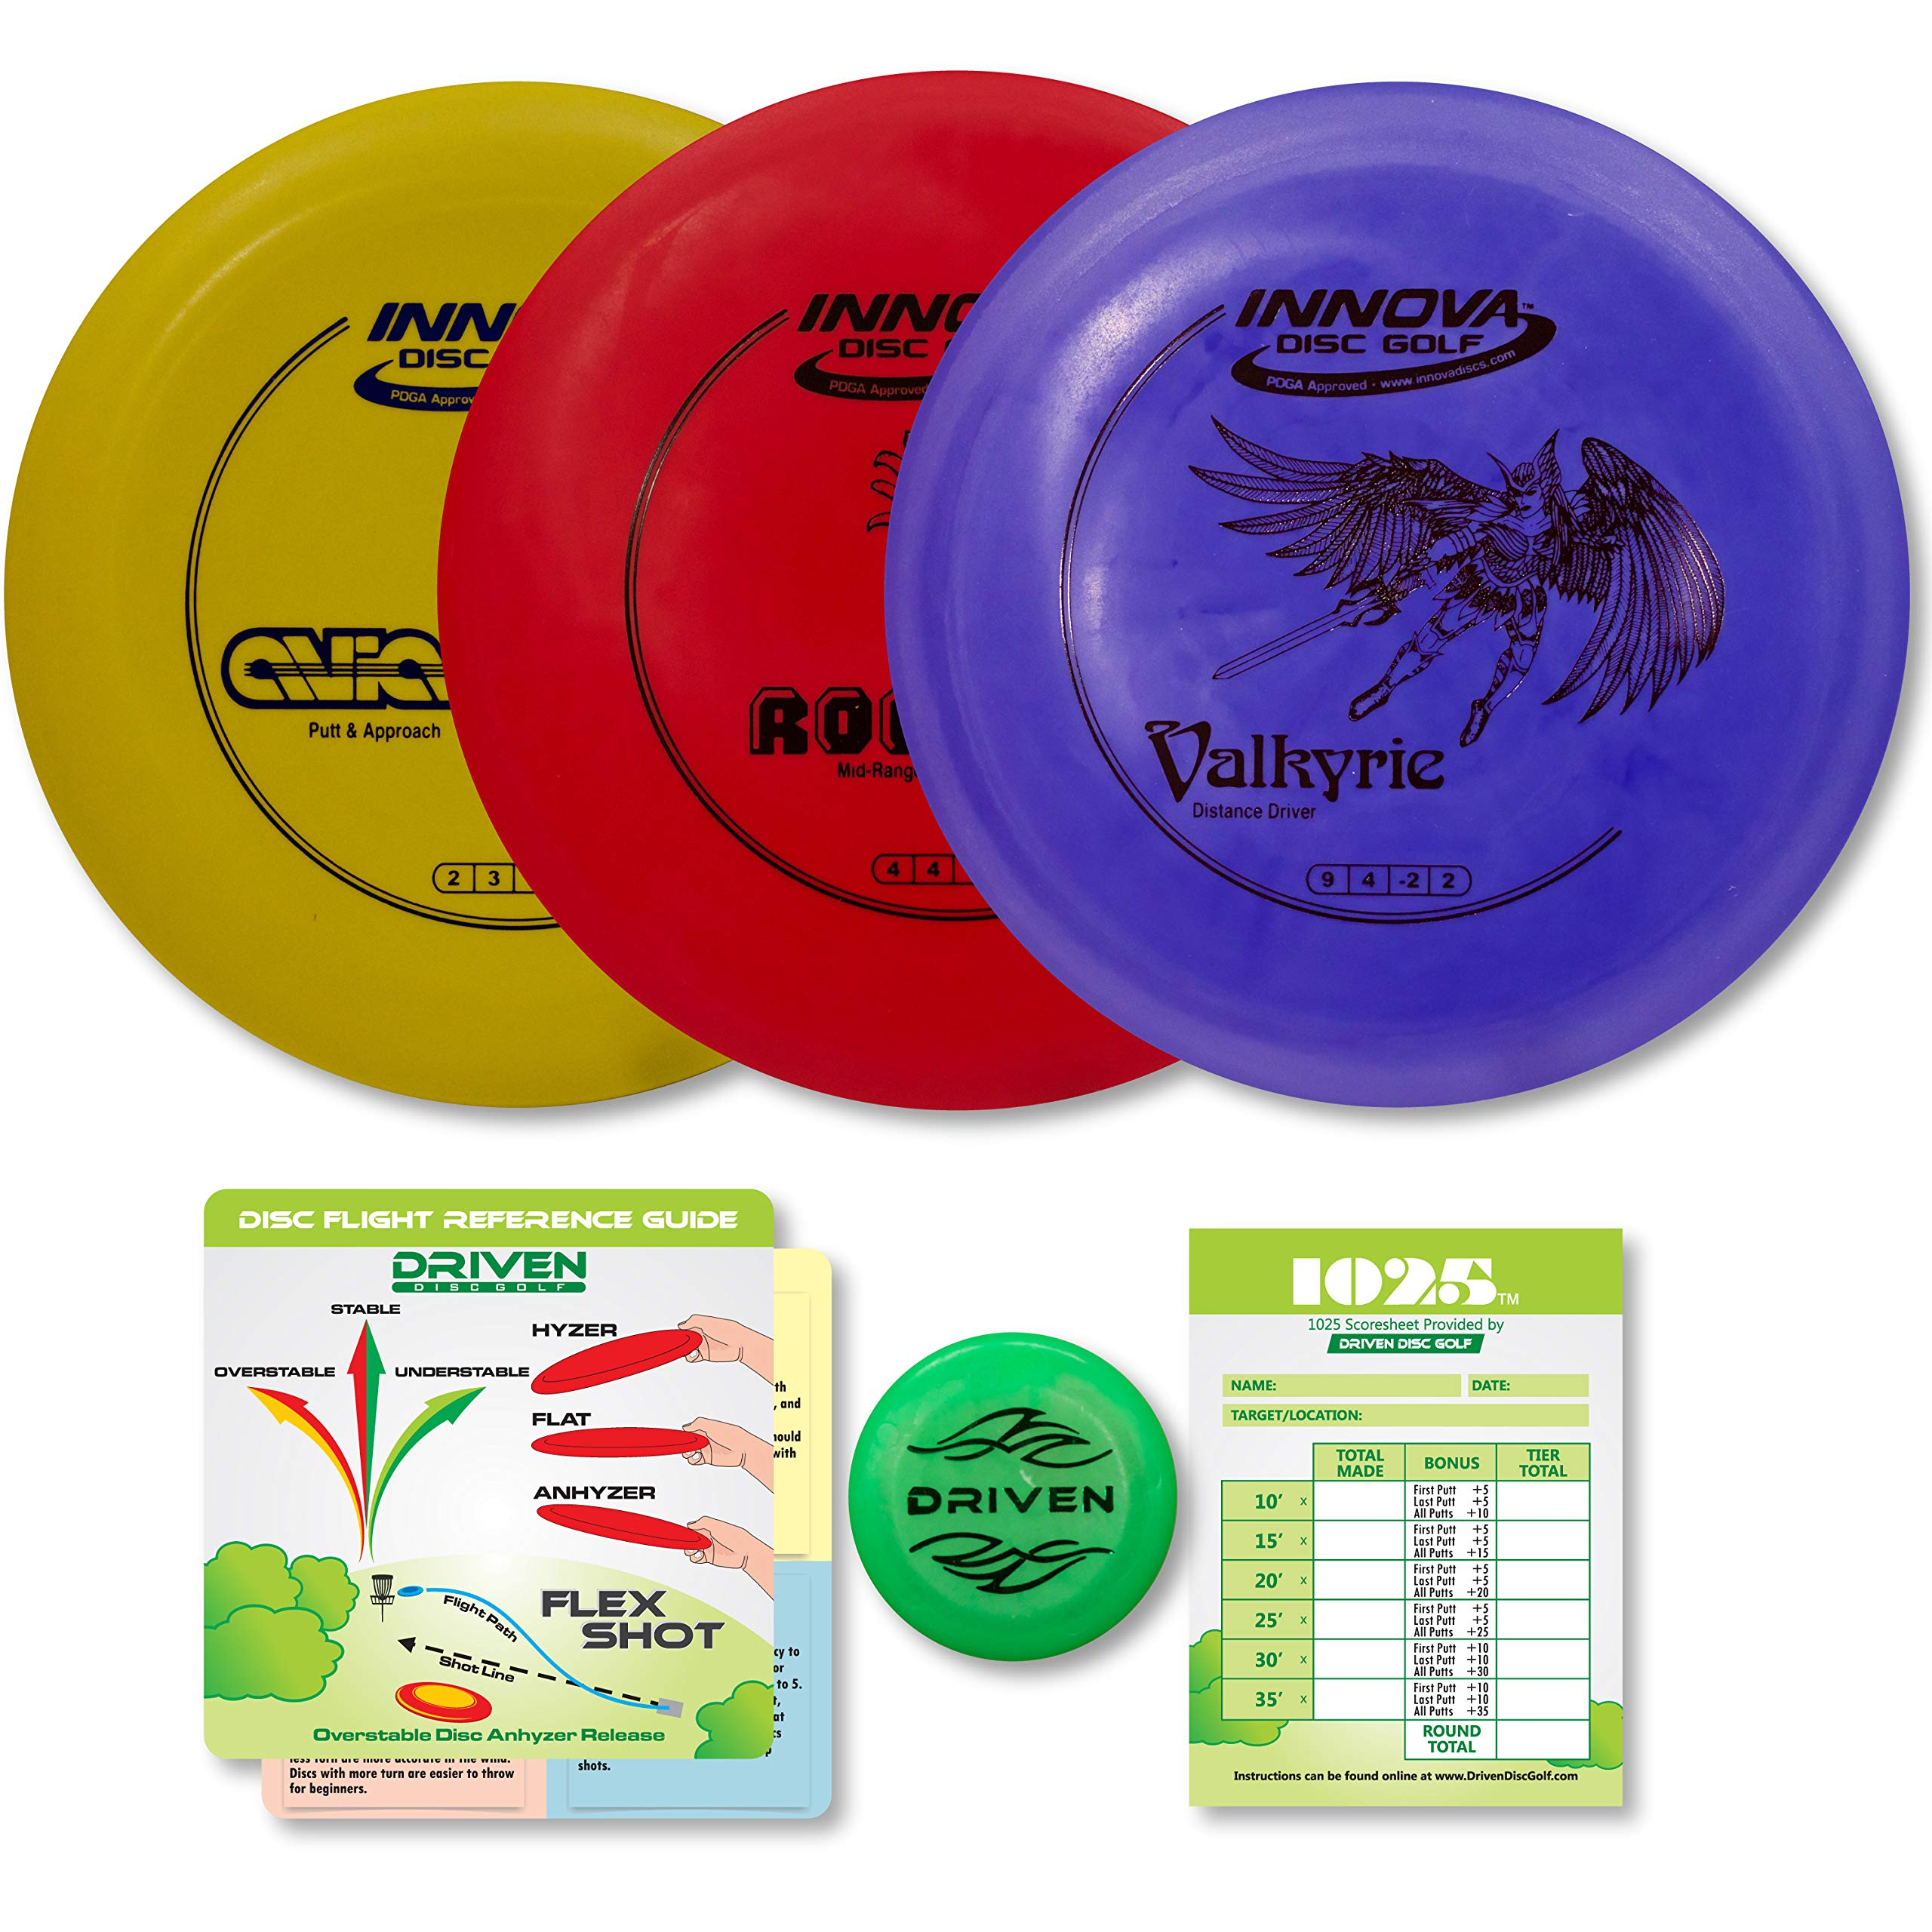 Driven Disc Golf Set - Innova Valk, ROC, and Aviar by Driven Disc Golf